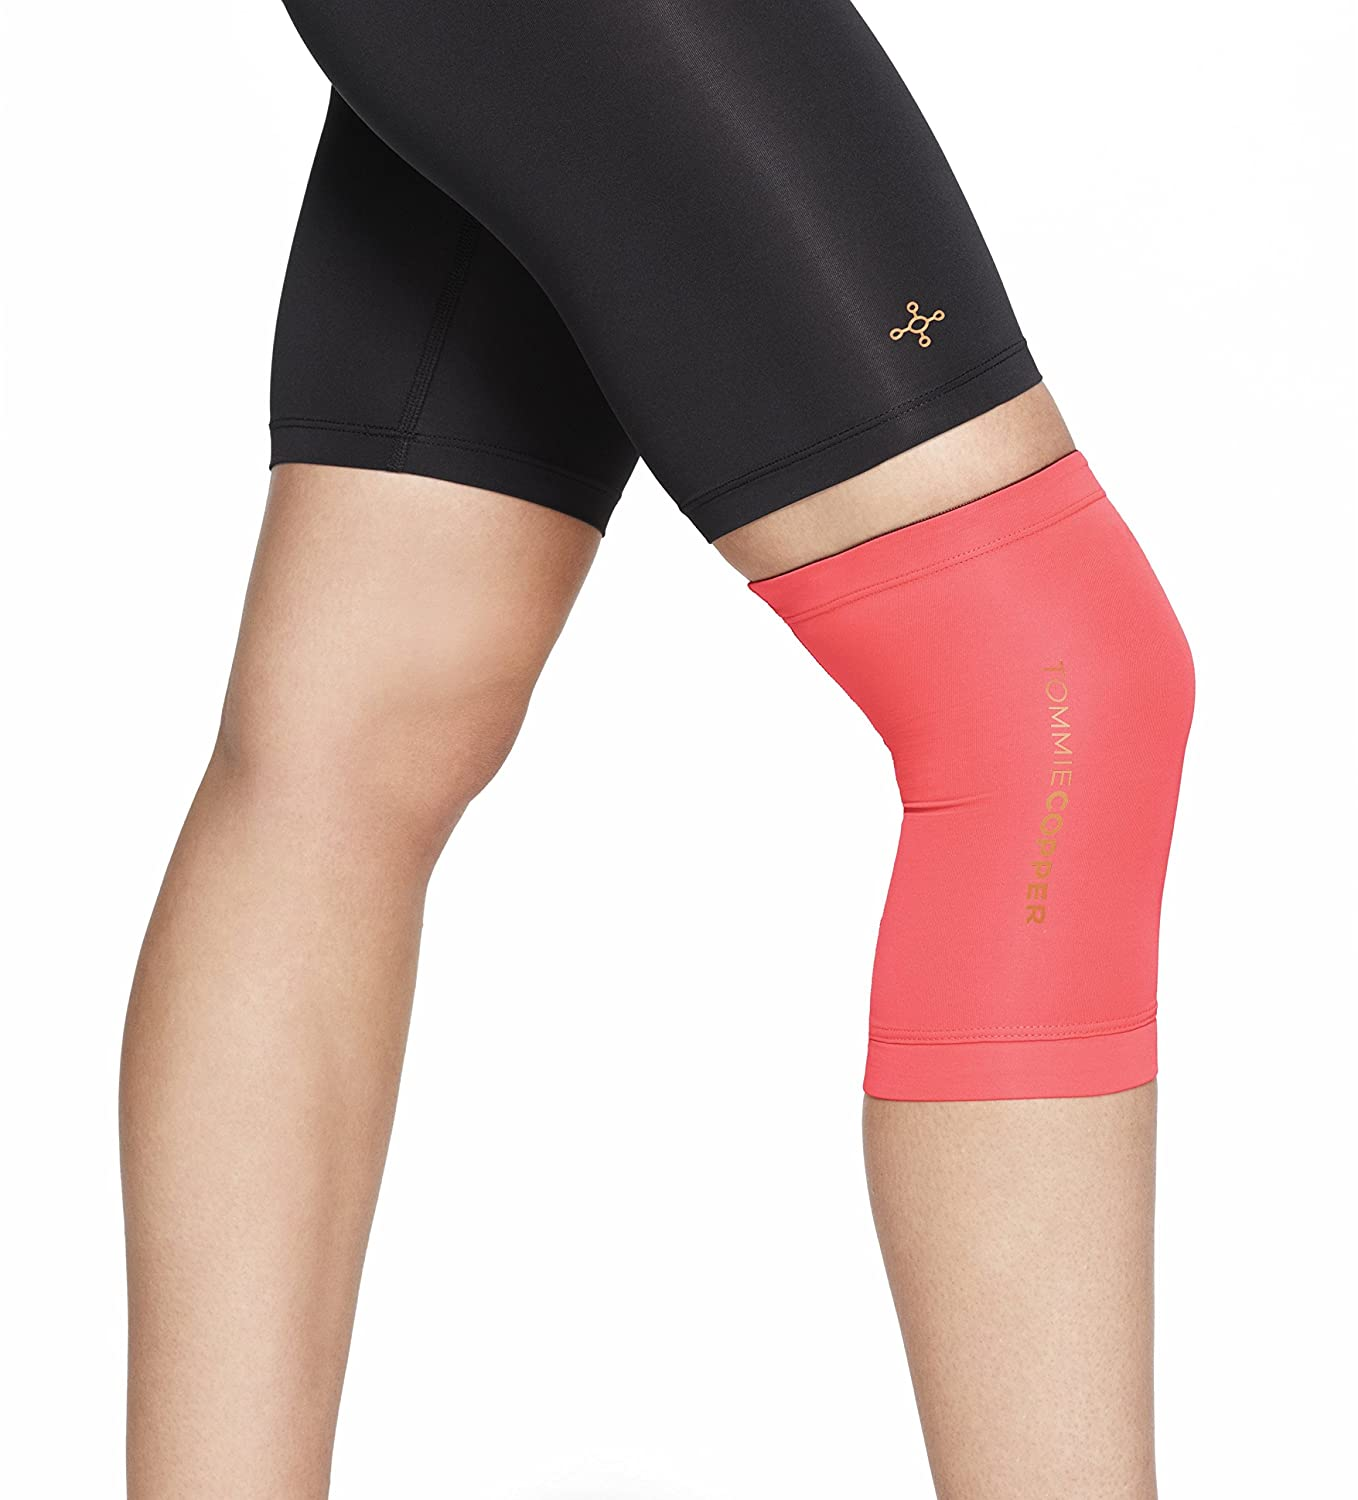 Stores that sell tommie copper - Amazon Com Tommie Copper Women S Contoured Knee Sleeve Sports Outdoors